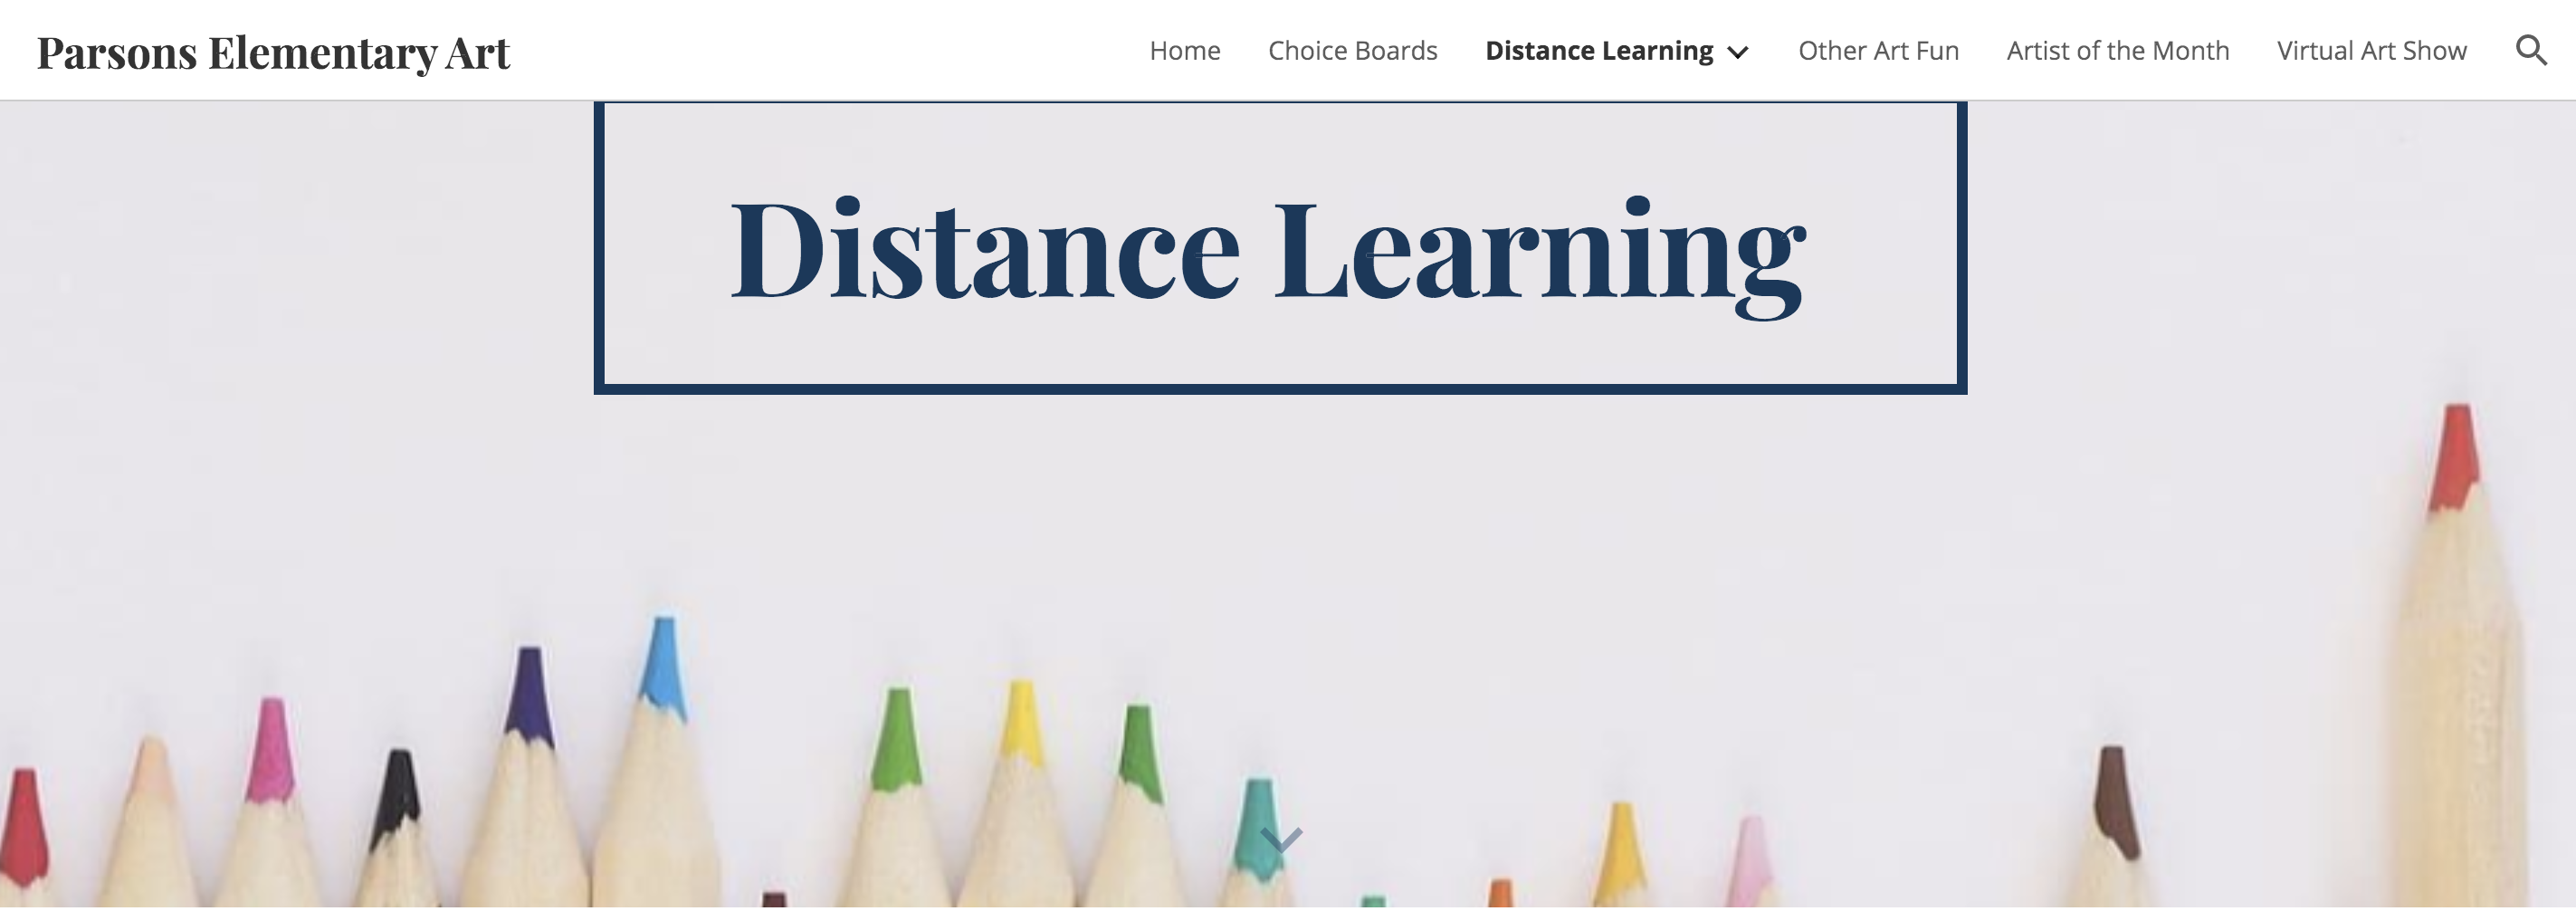 https://sites.google.com/nbtschools.org/parsons-elementary-art/distance-learning